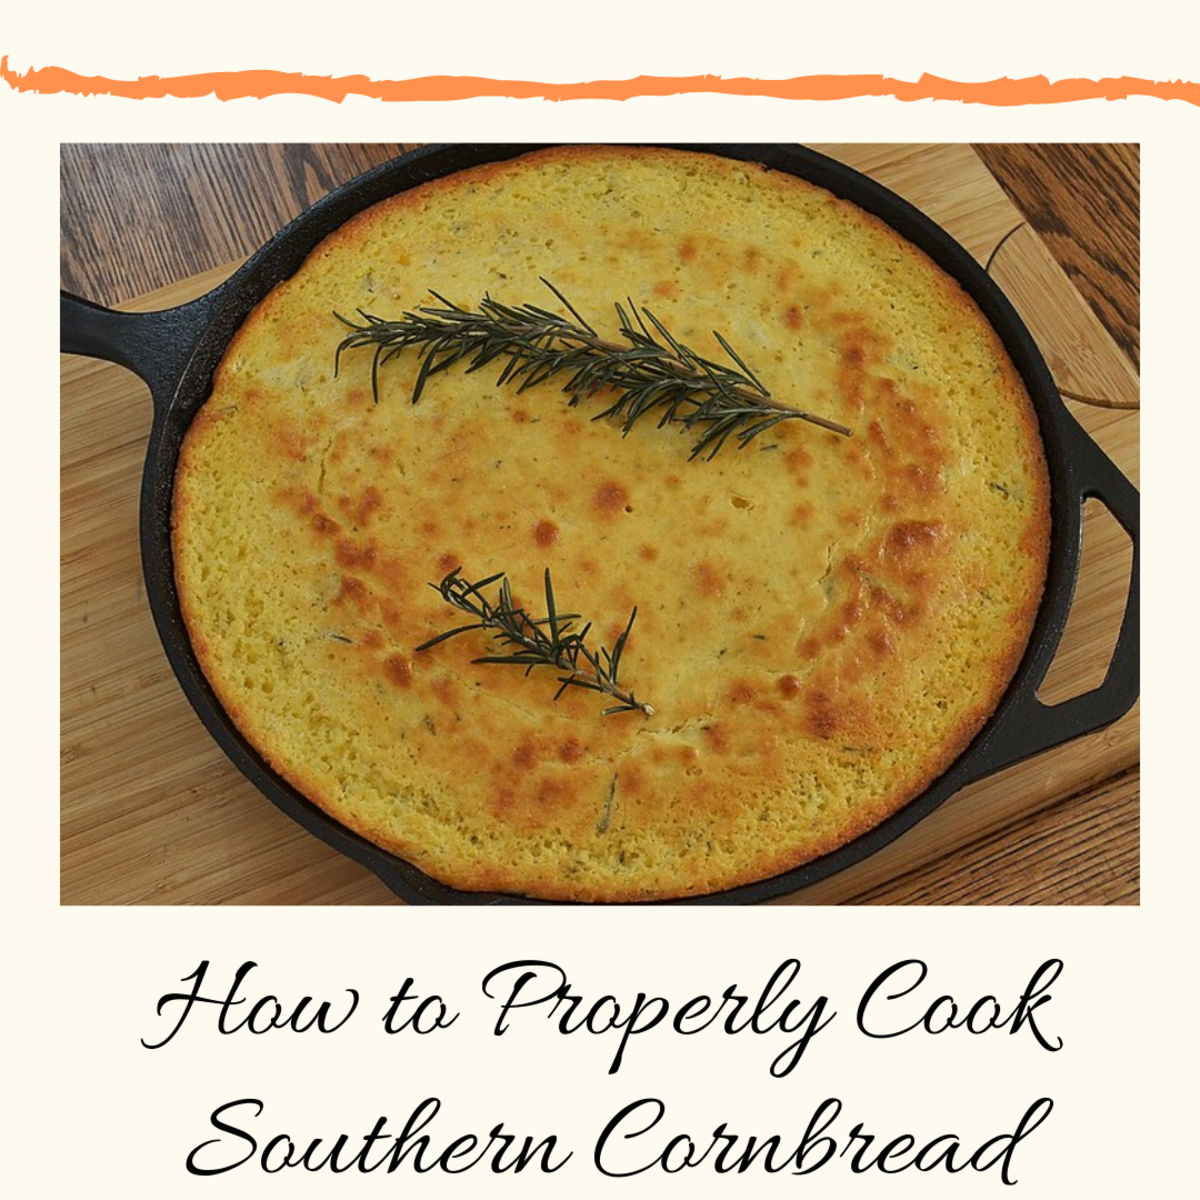 Your whole family will love this great southern cornbread recipe.